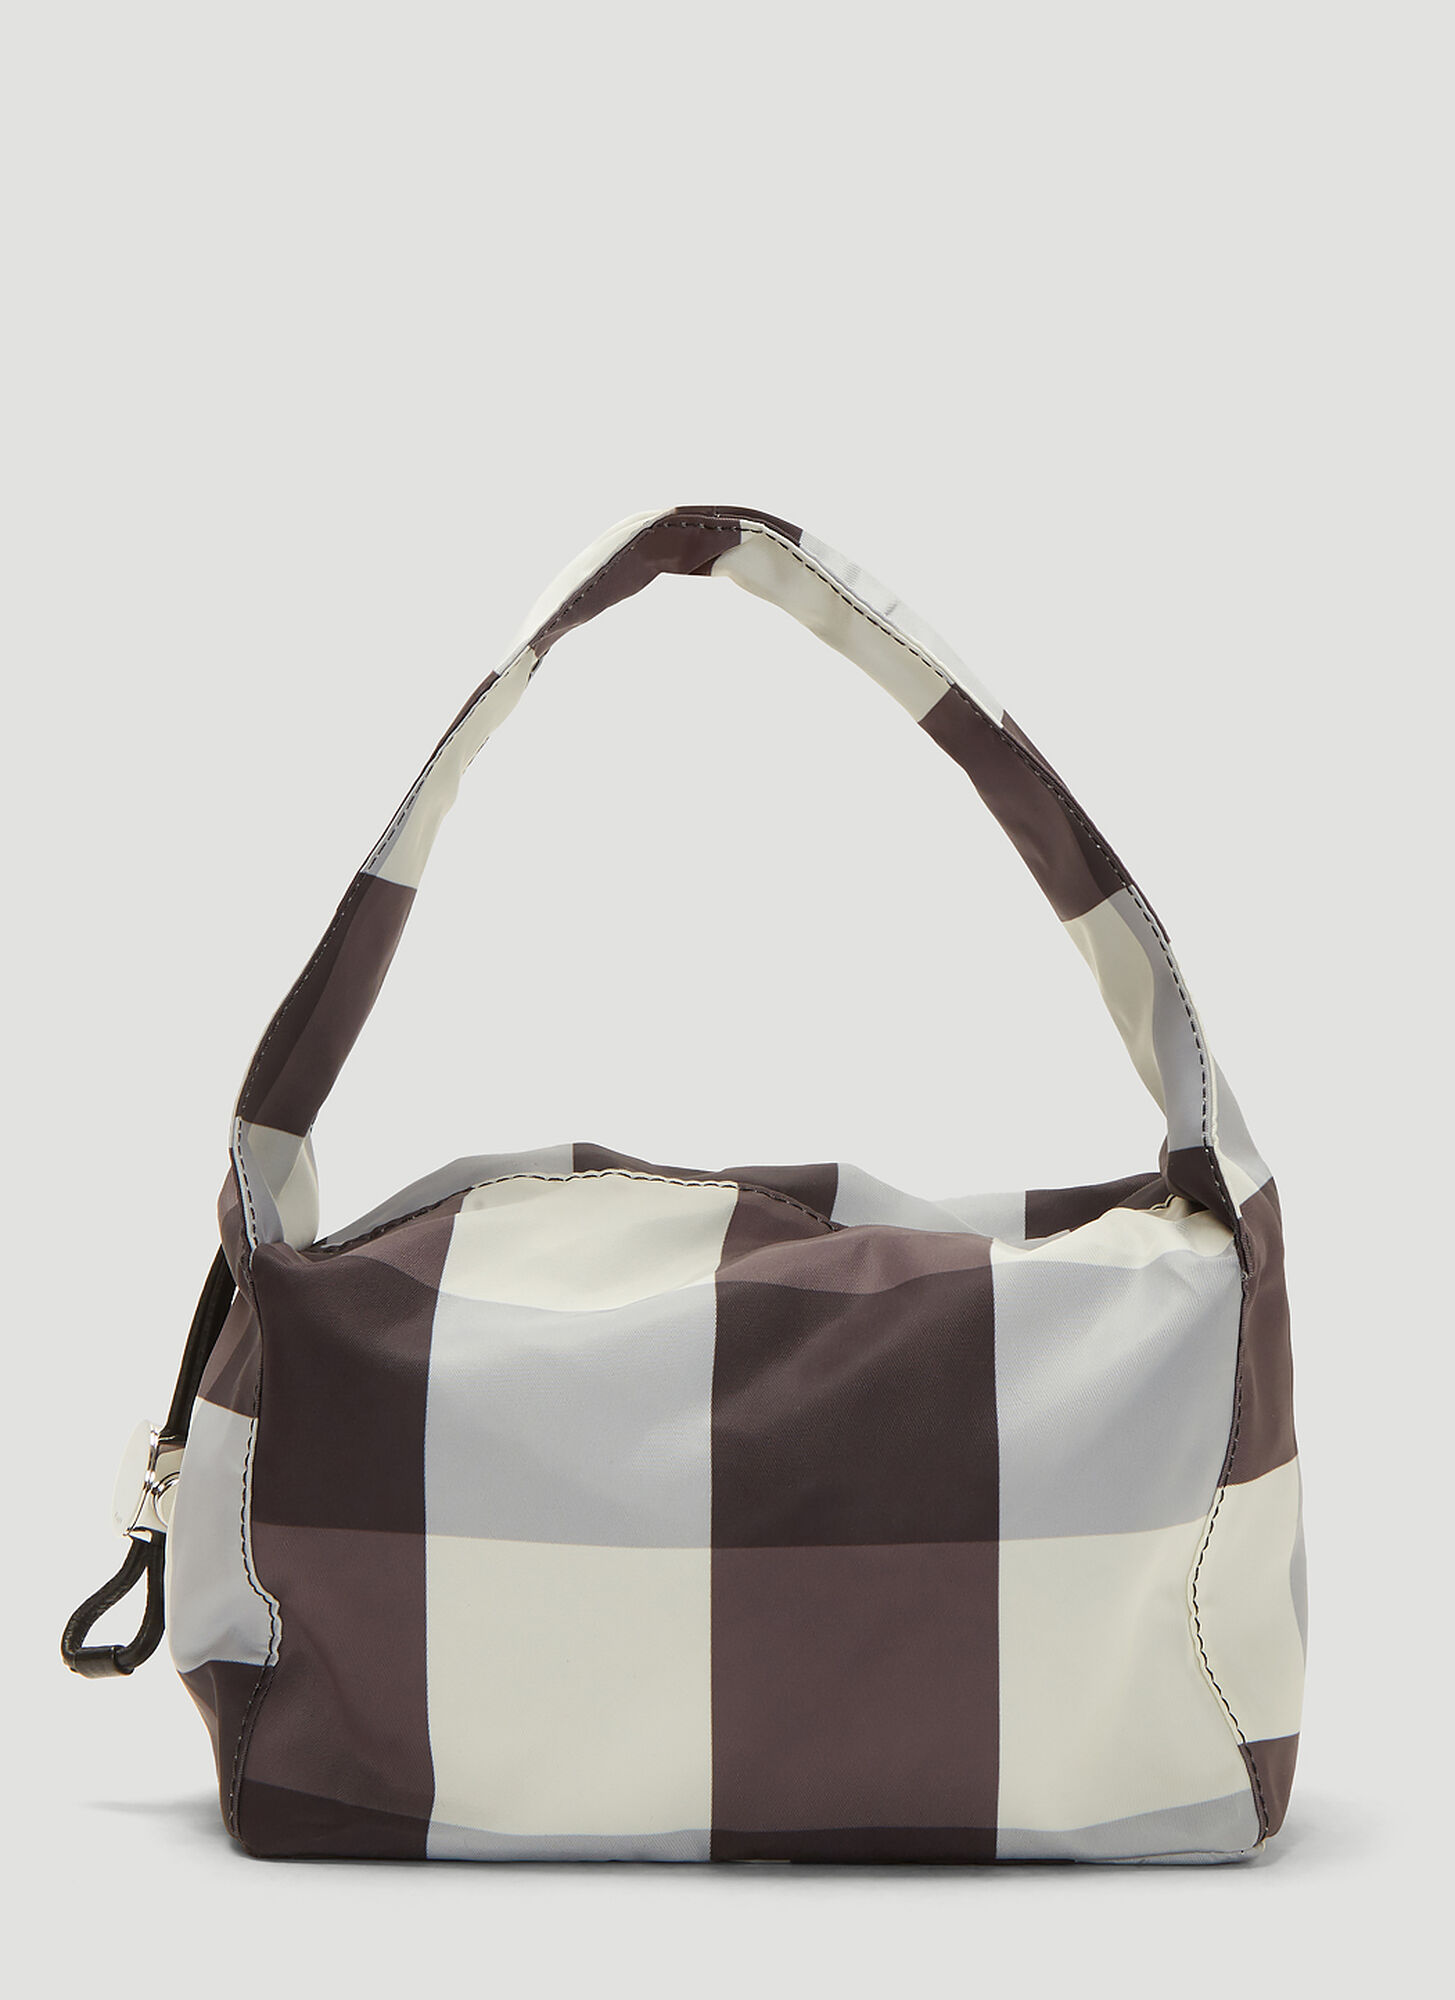 Kara Baby Cloud Bag in White